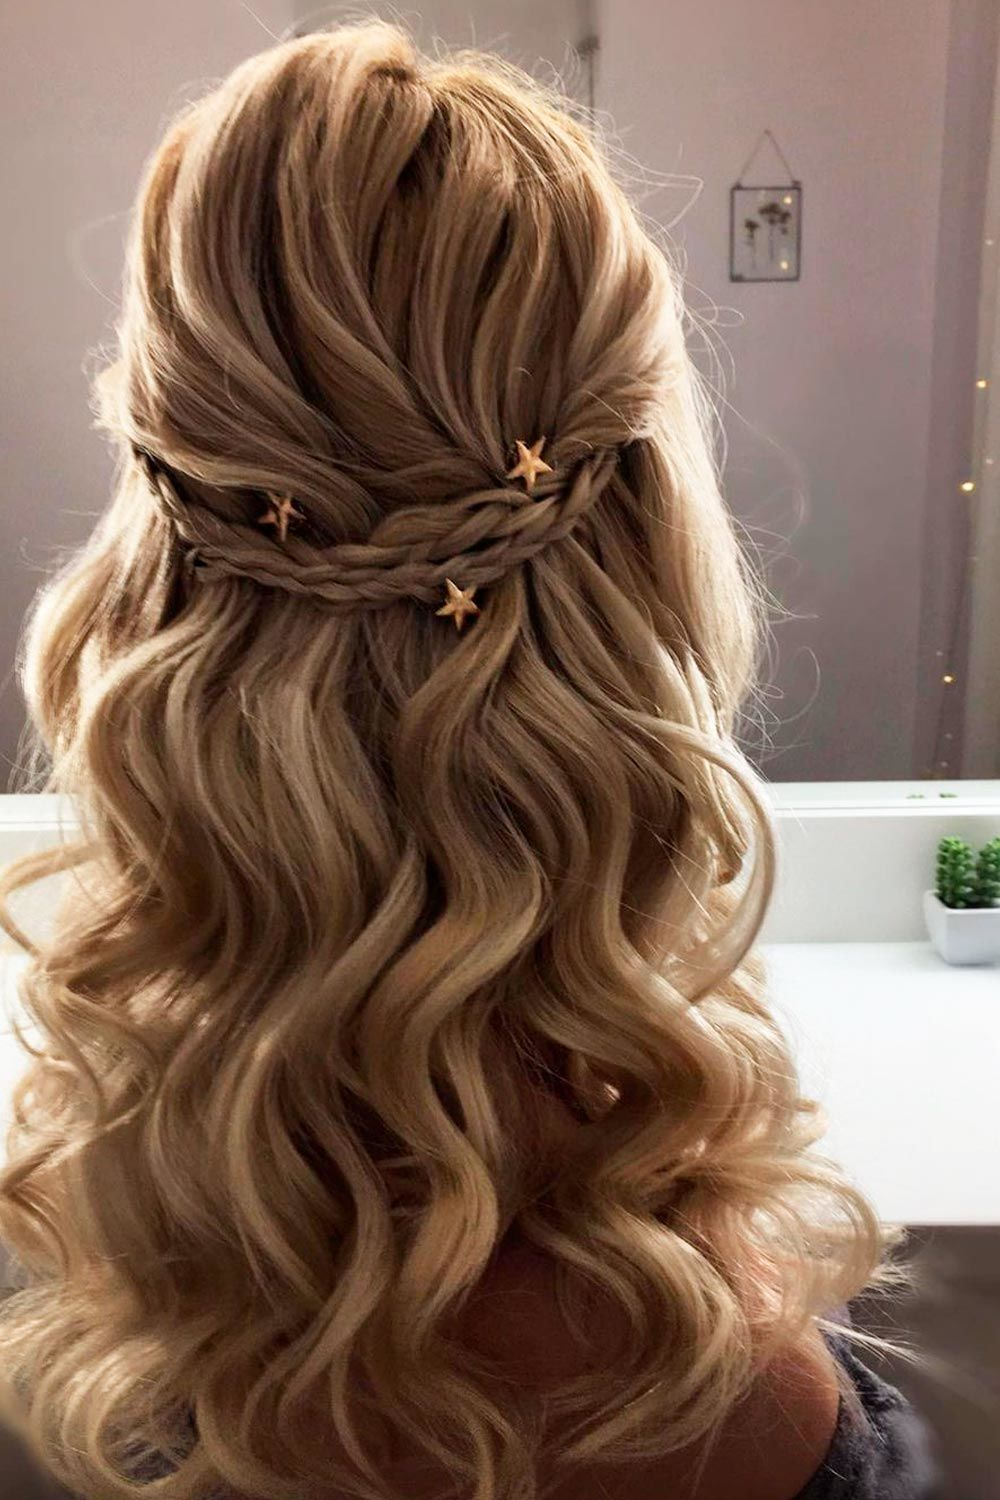 Lovely Braided Half Up Half Down Hairstyles